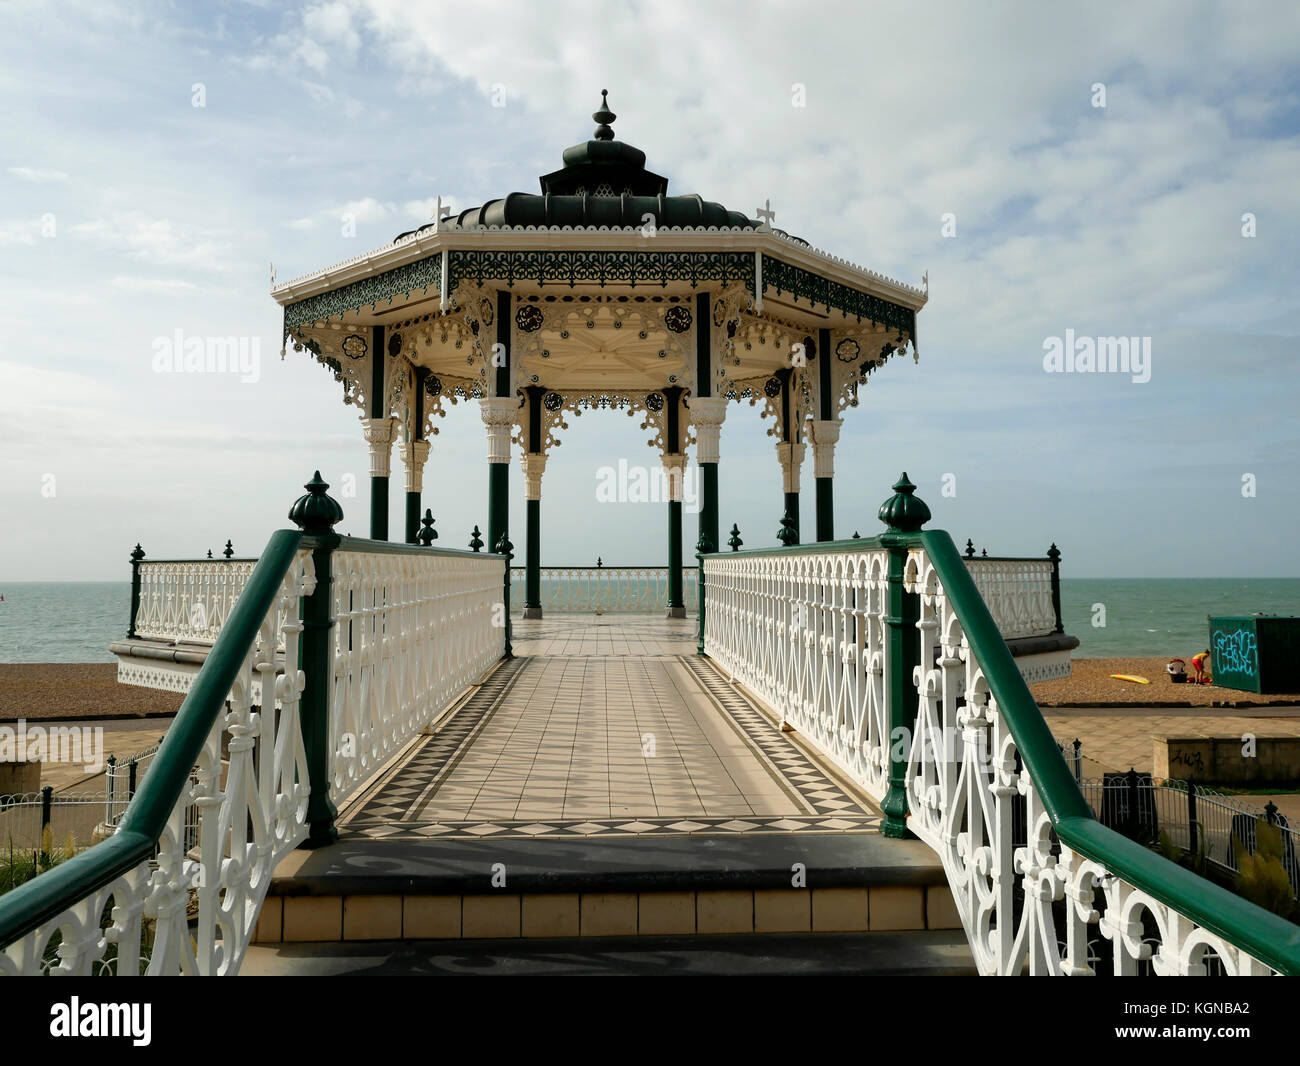 Bandstand on Brightons seafront England - Stock Image